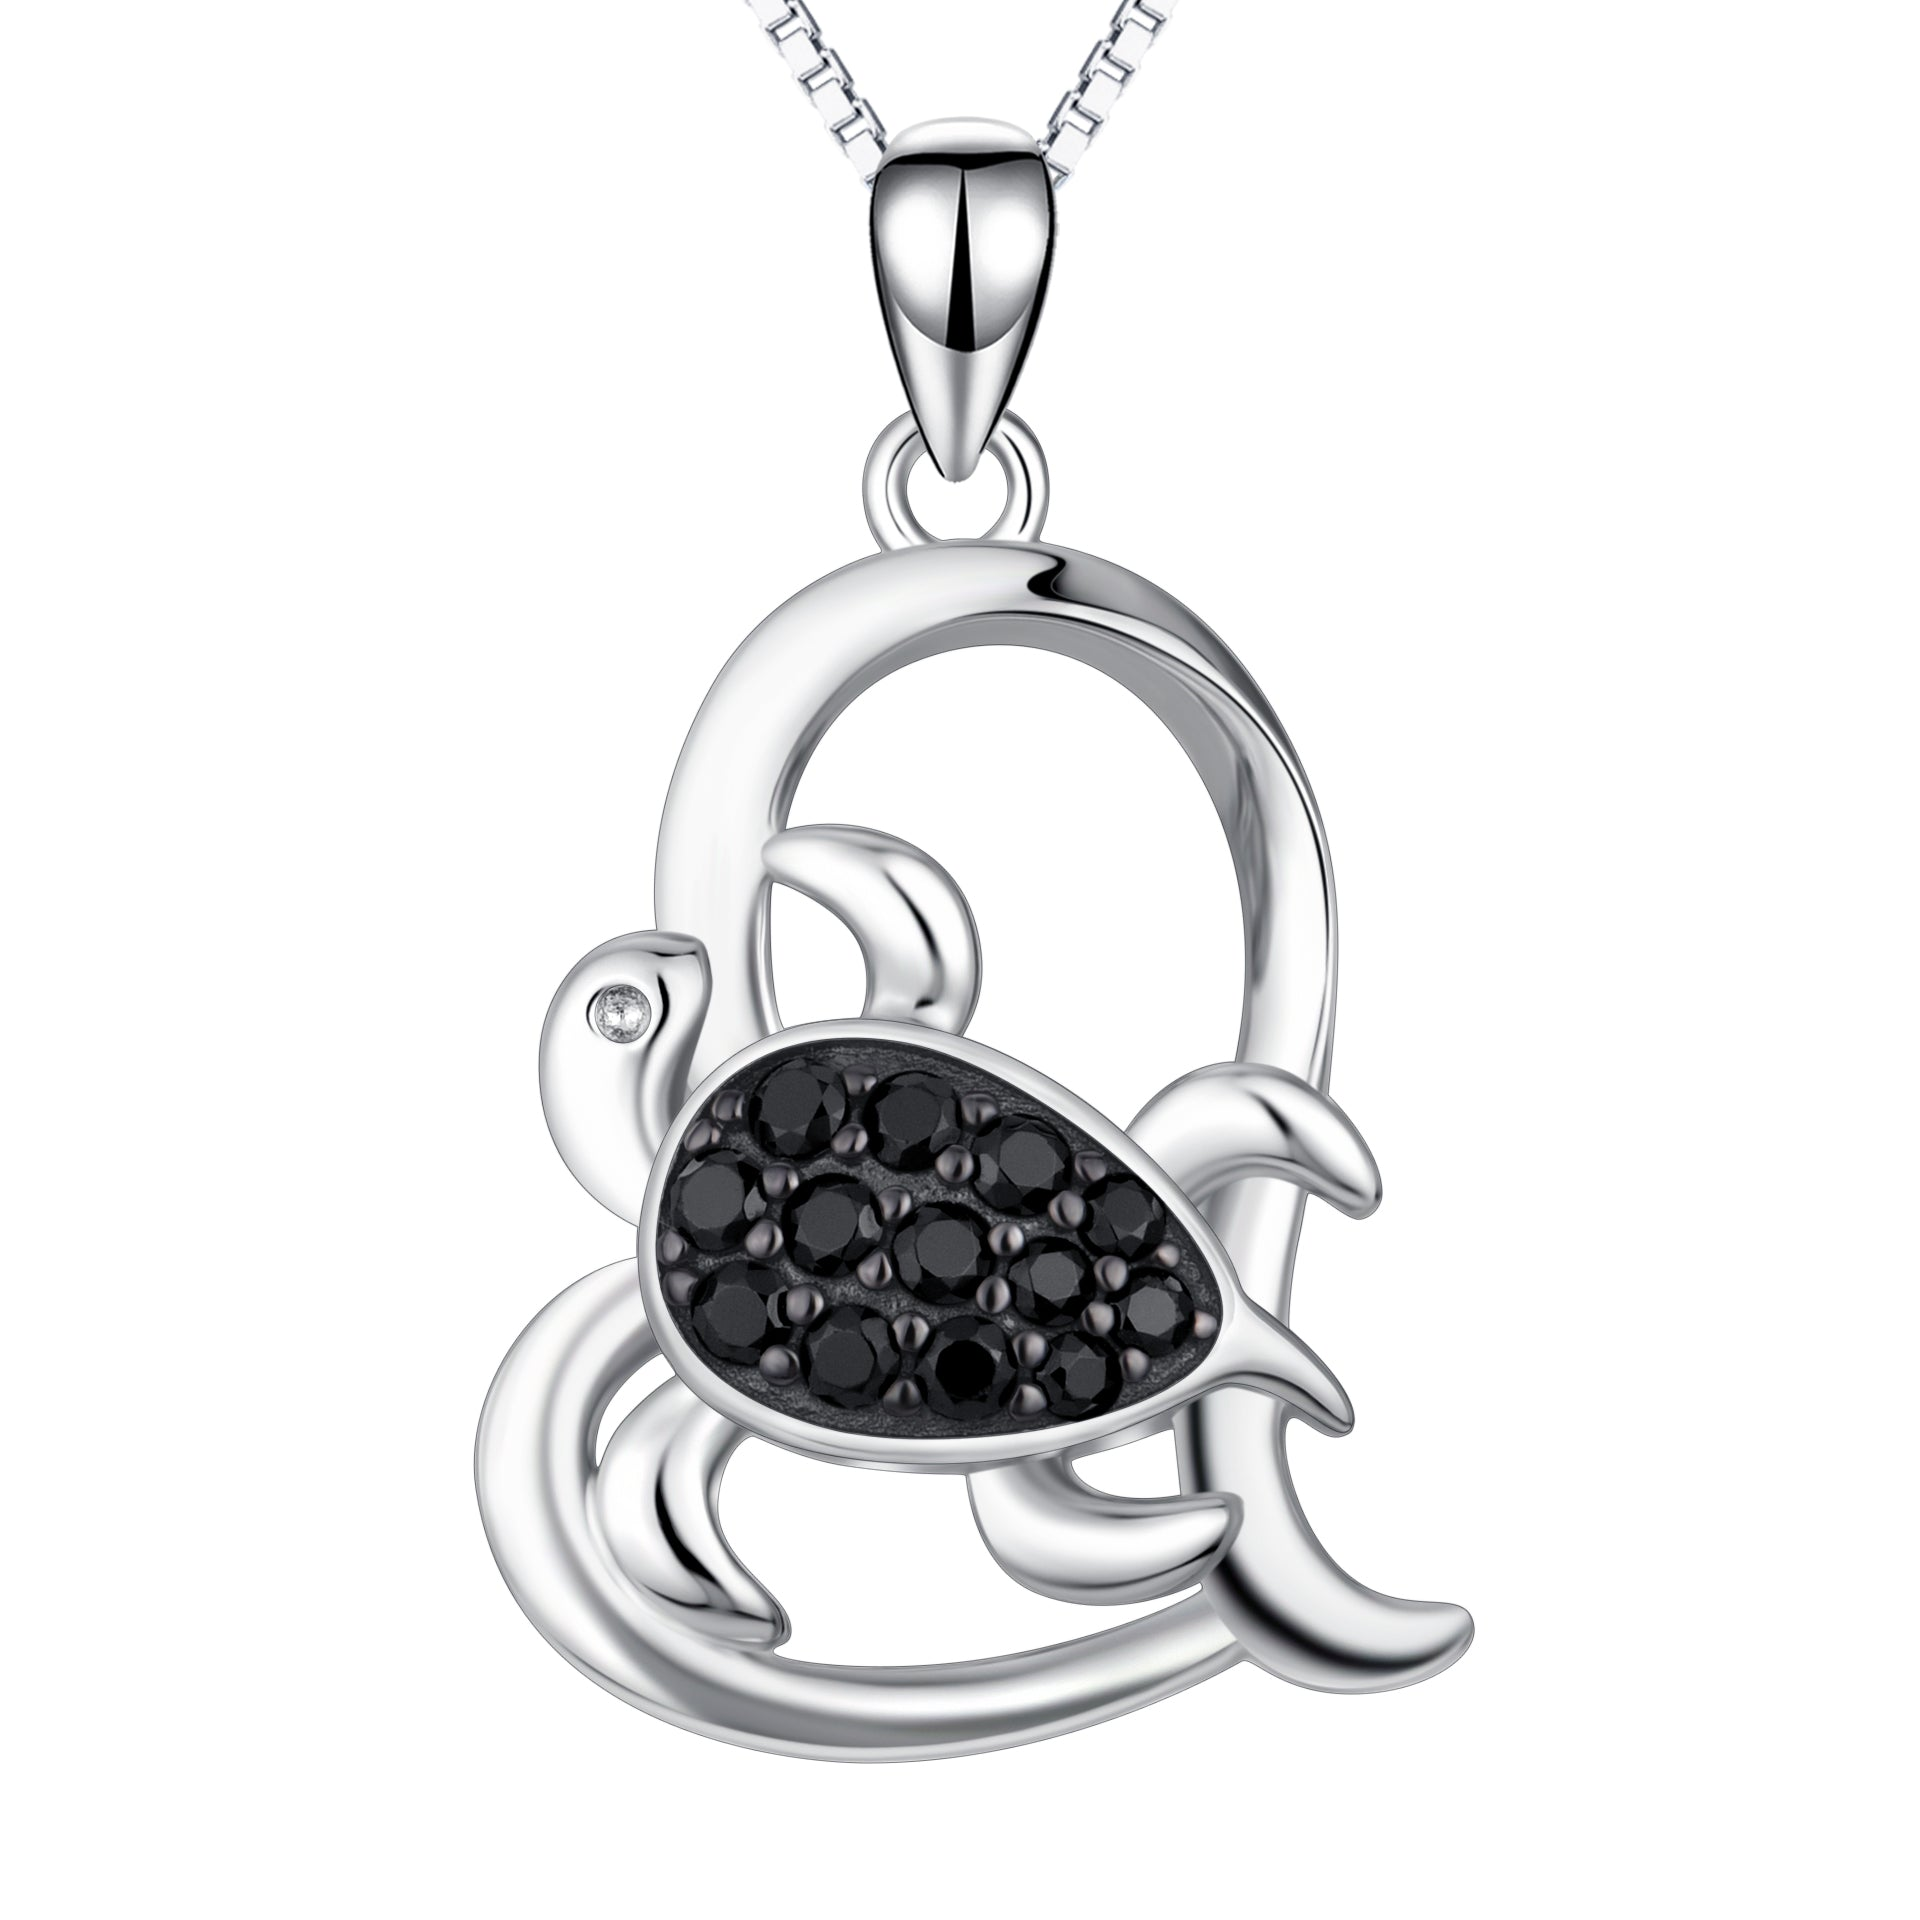 Black zircon turtle necklace heart shaped love male jewelry necklace